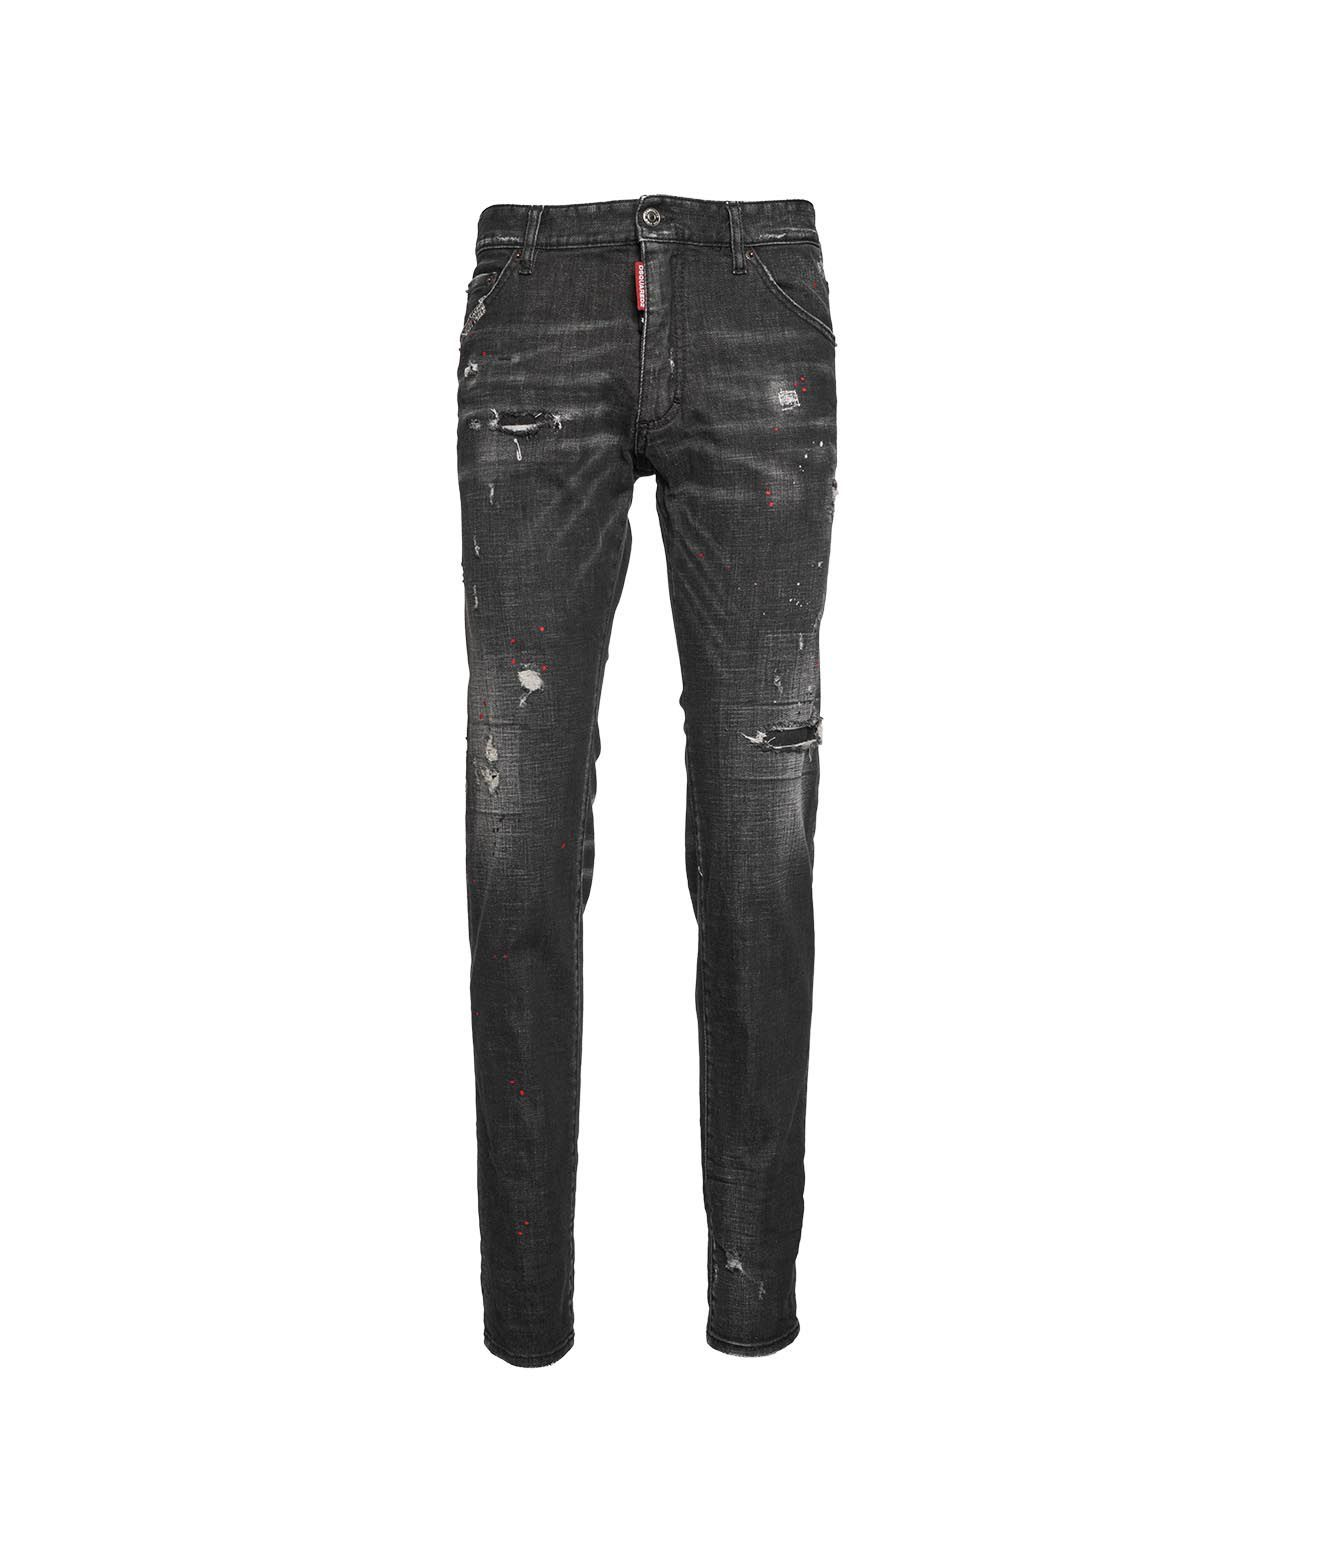 Dsquared2 Jeans DSQUARED2 MEN'S S74LB0878S3035711900 GREY OTHER MATERIALS JEANS